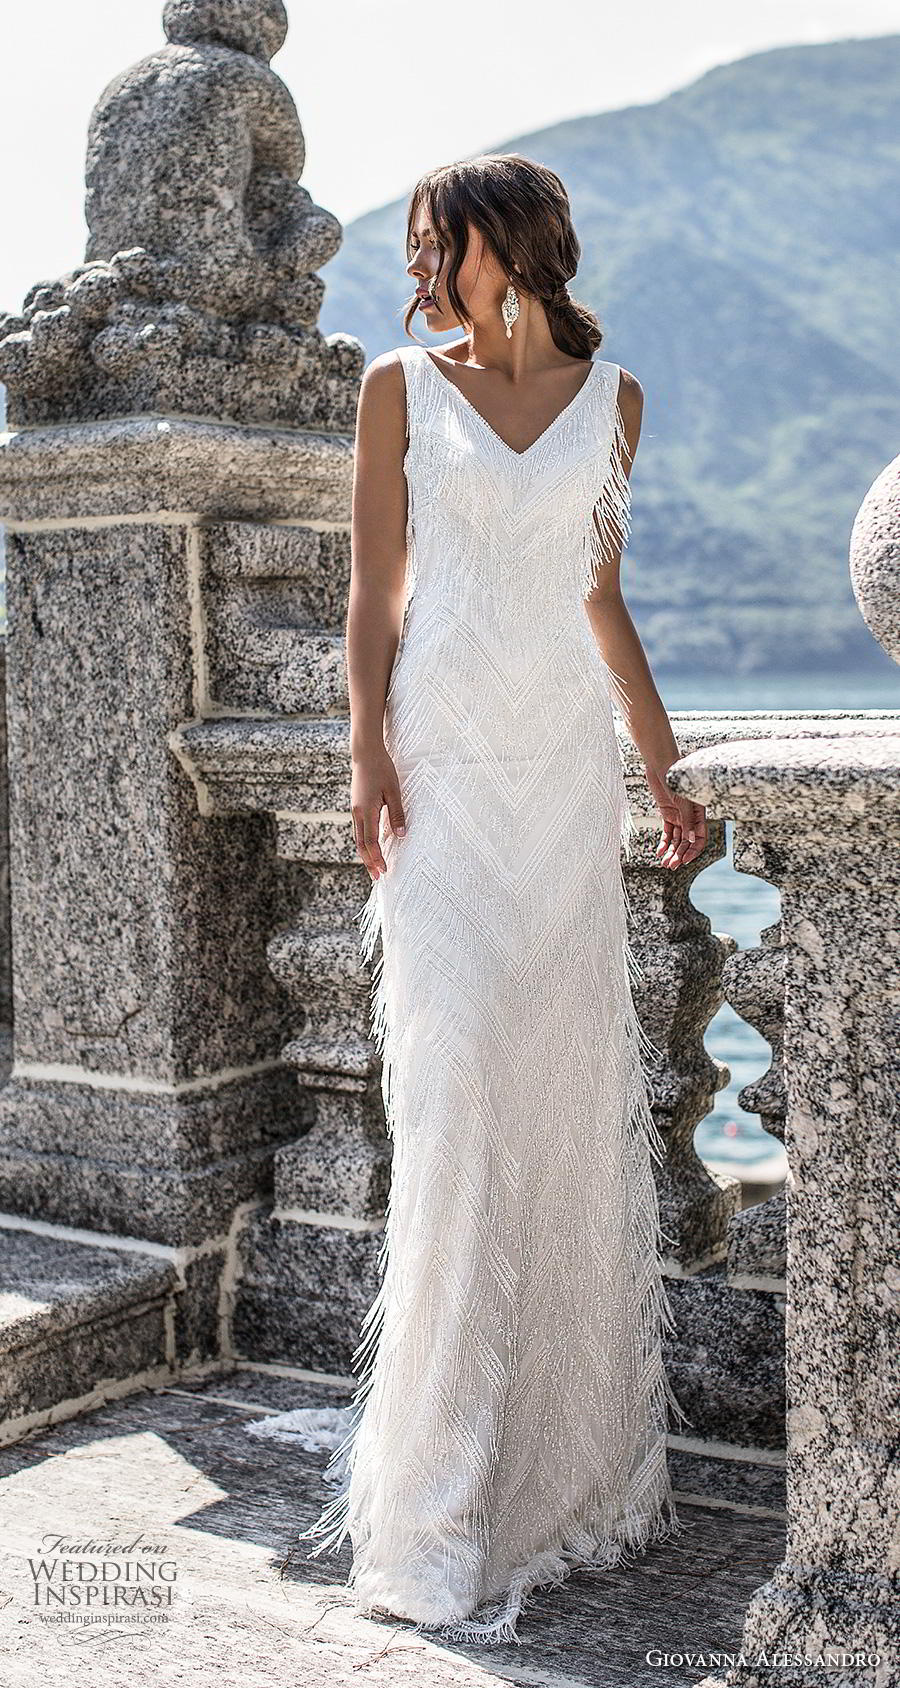 giovanna alessandro 2019 bridal sleeveless v neck full embellishment fringe elegant sheath wedding dress backless v back sweep train (15) mv